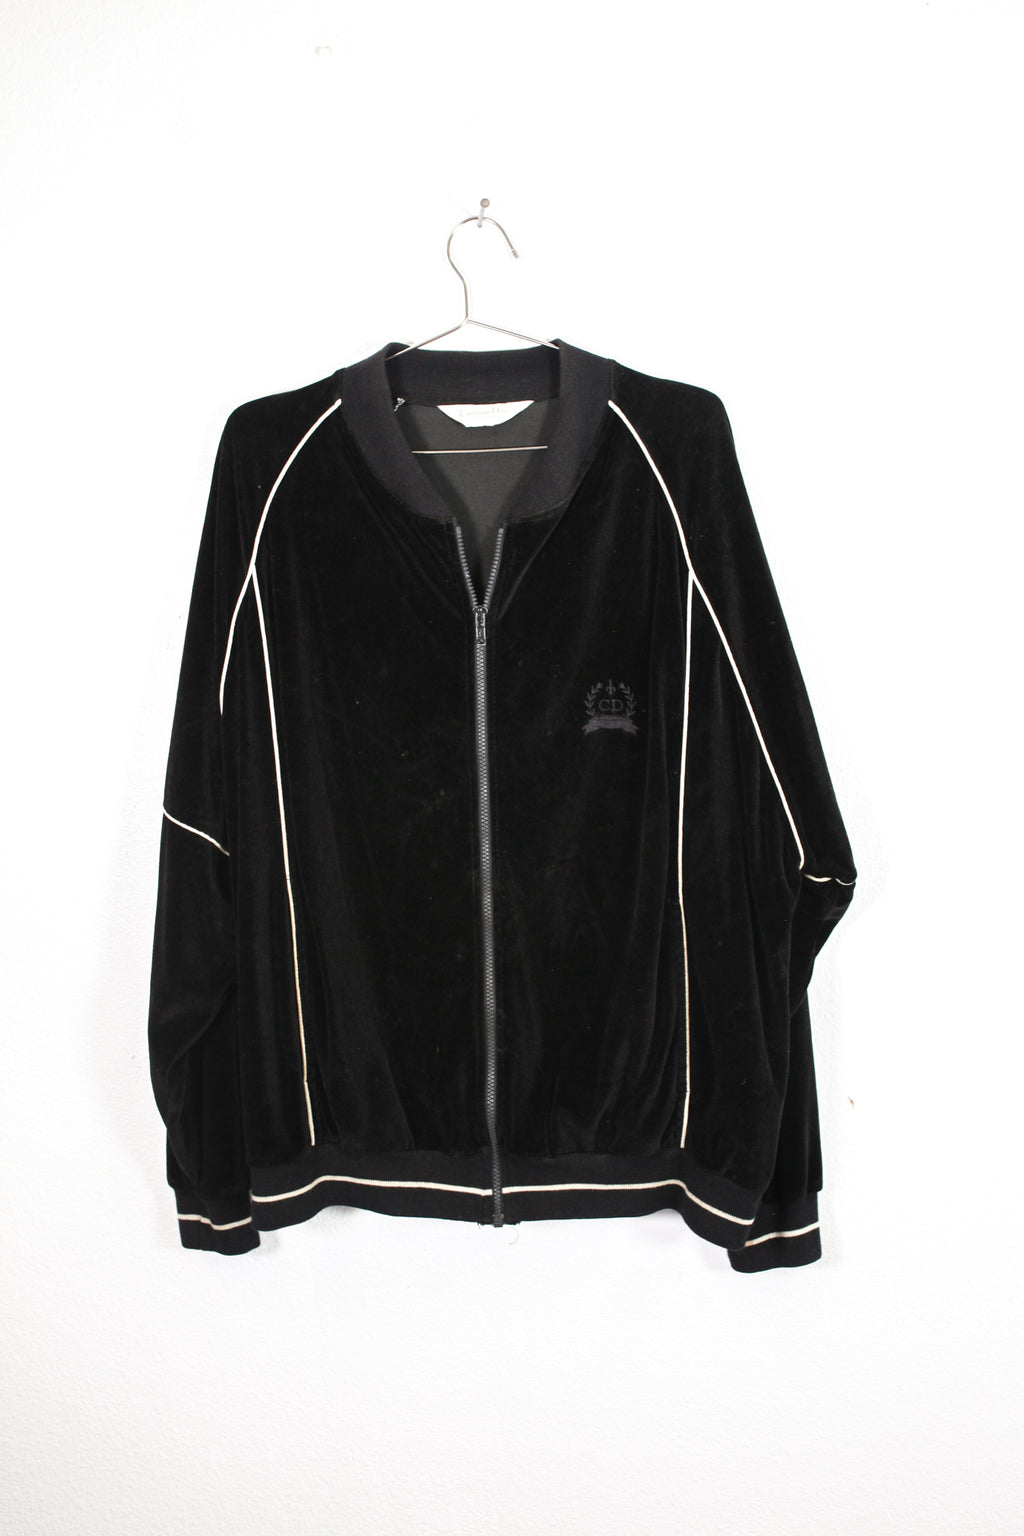 Black Christian Dior Zip Up